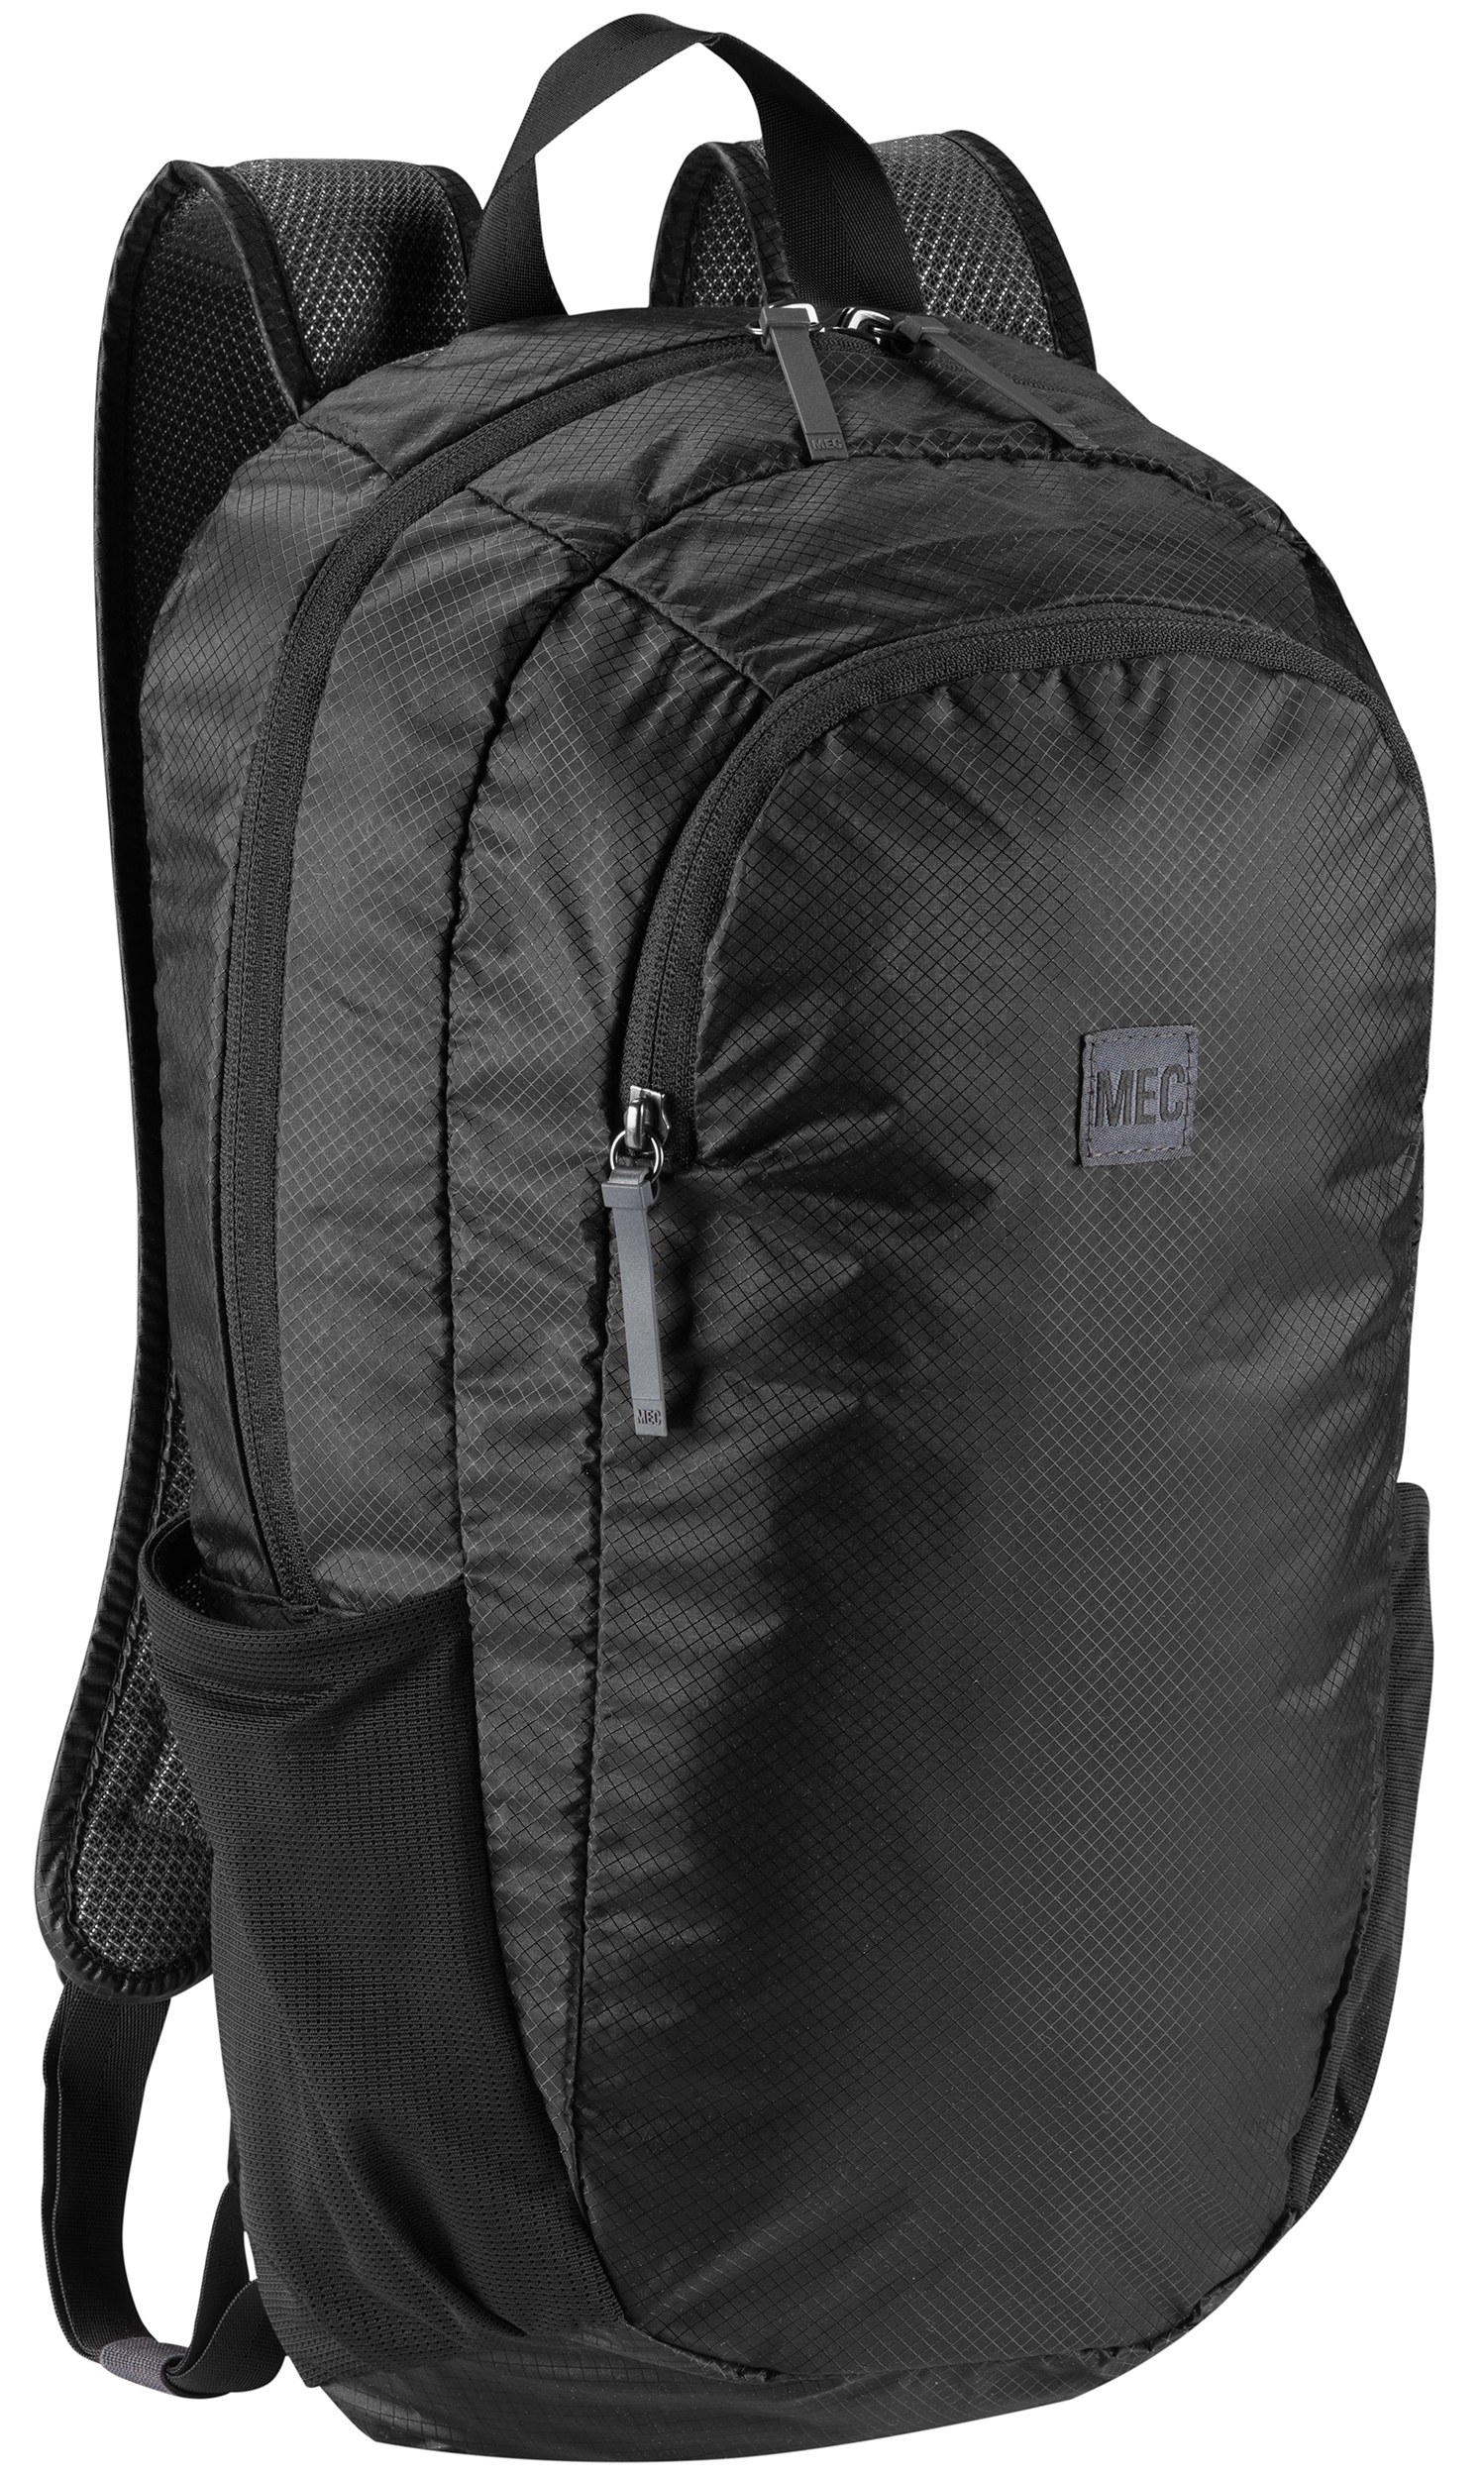 Mec Waterproof Backpack Click Backpacks